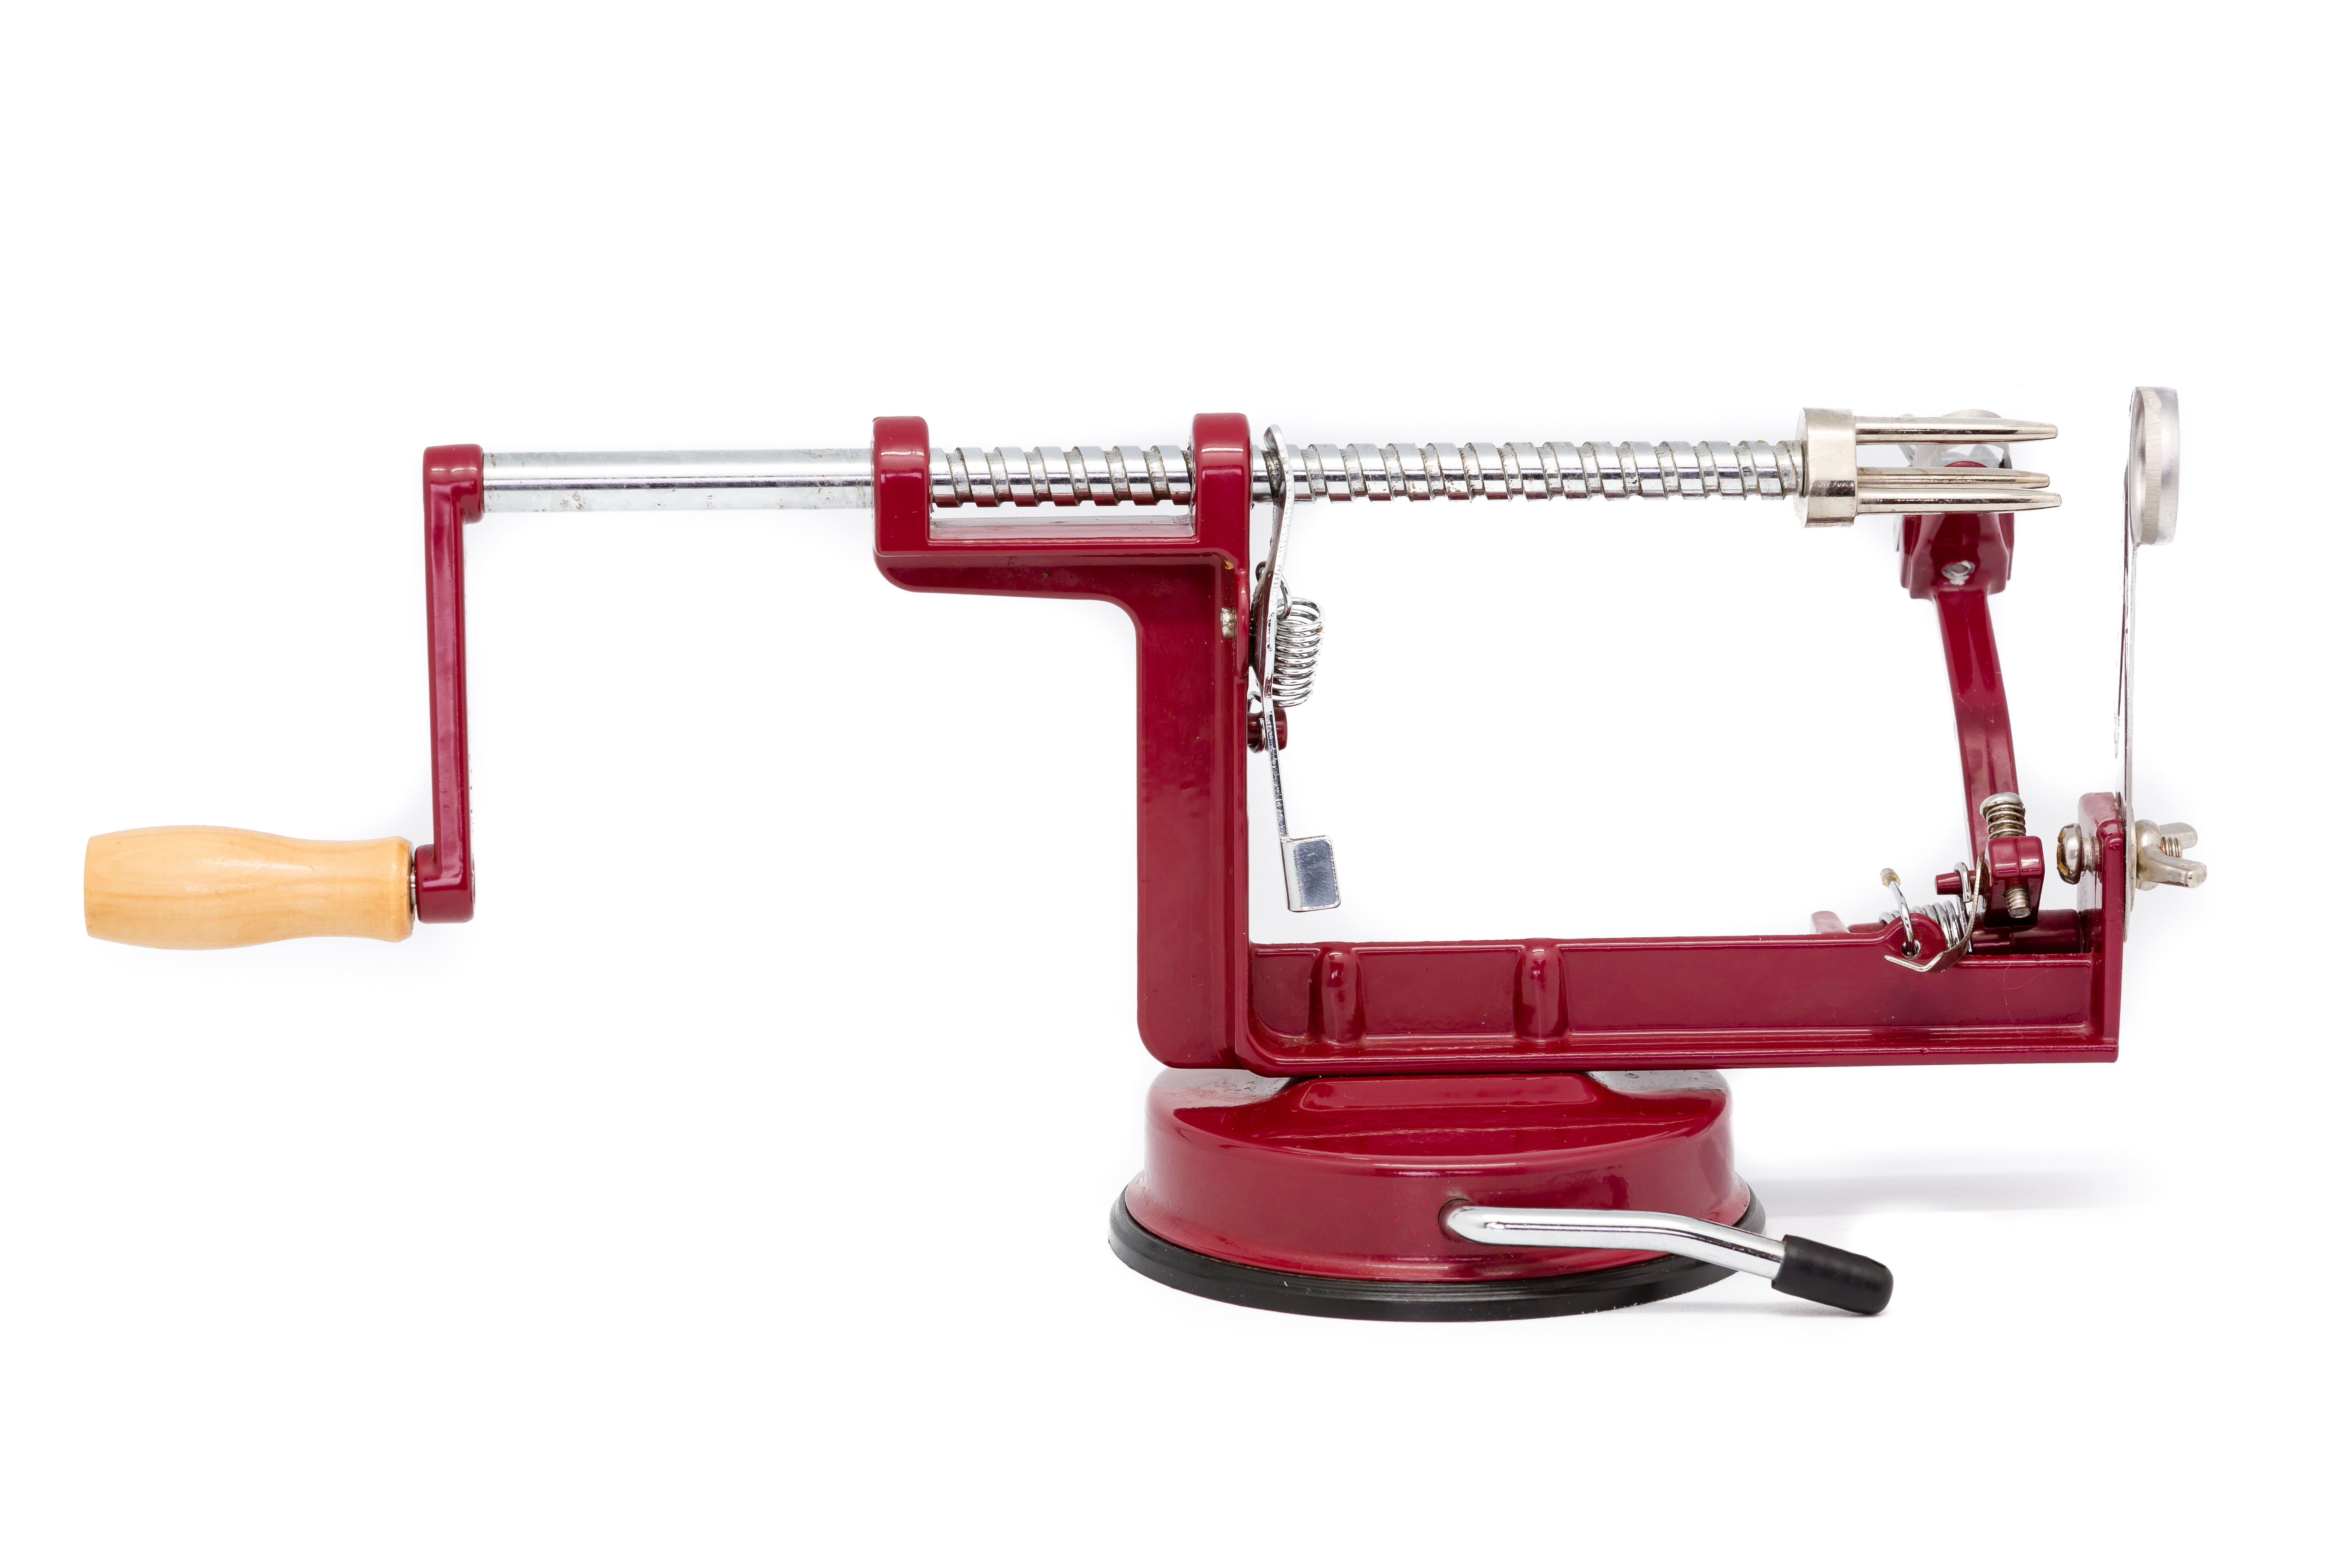 see the apple peeler here